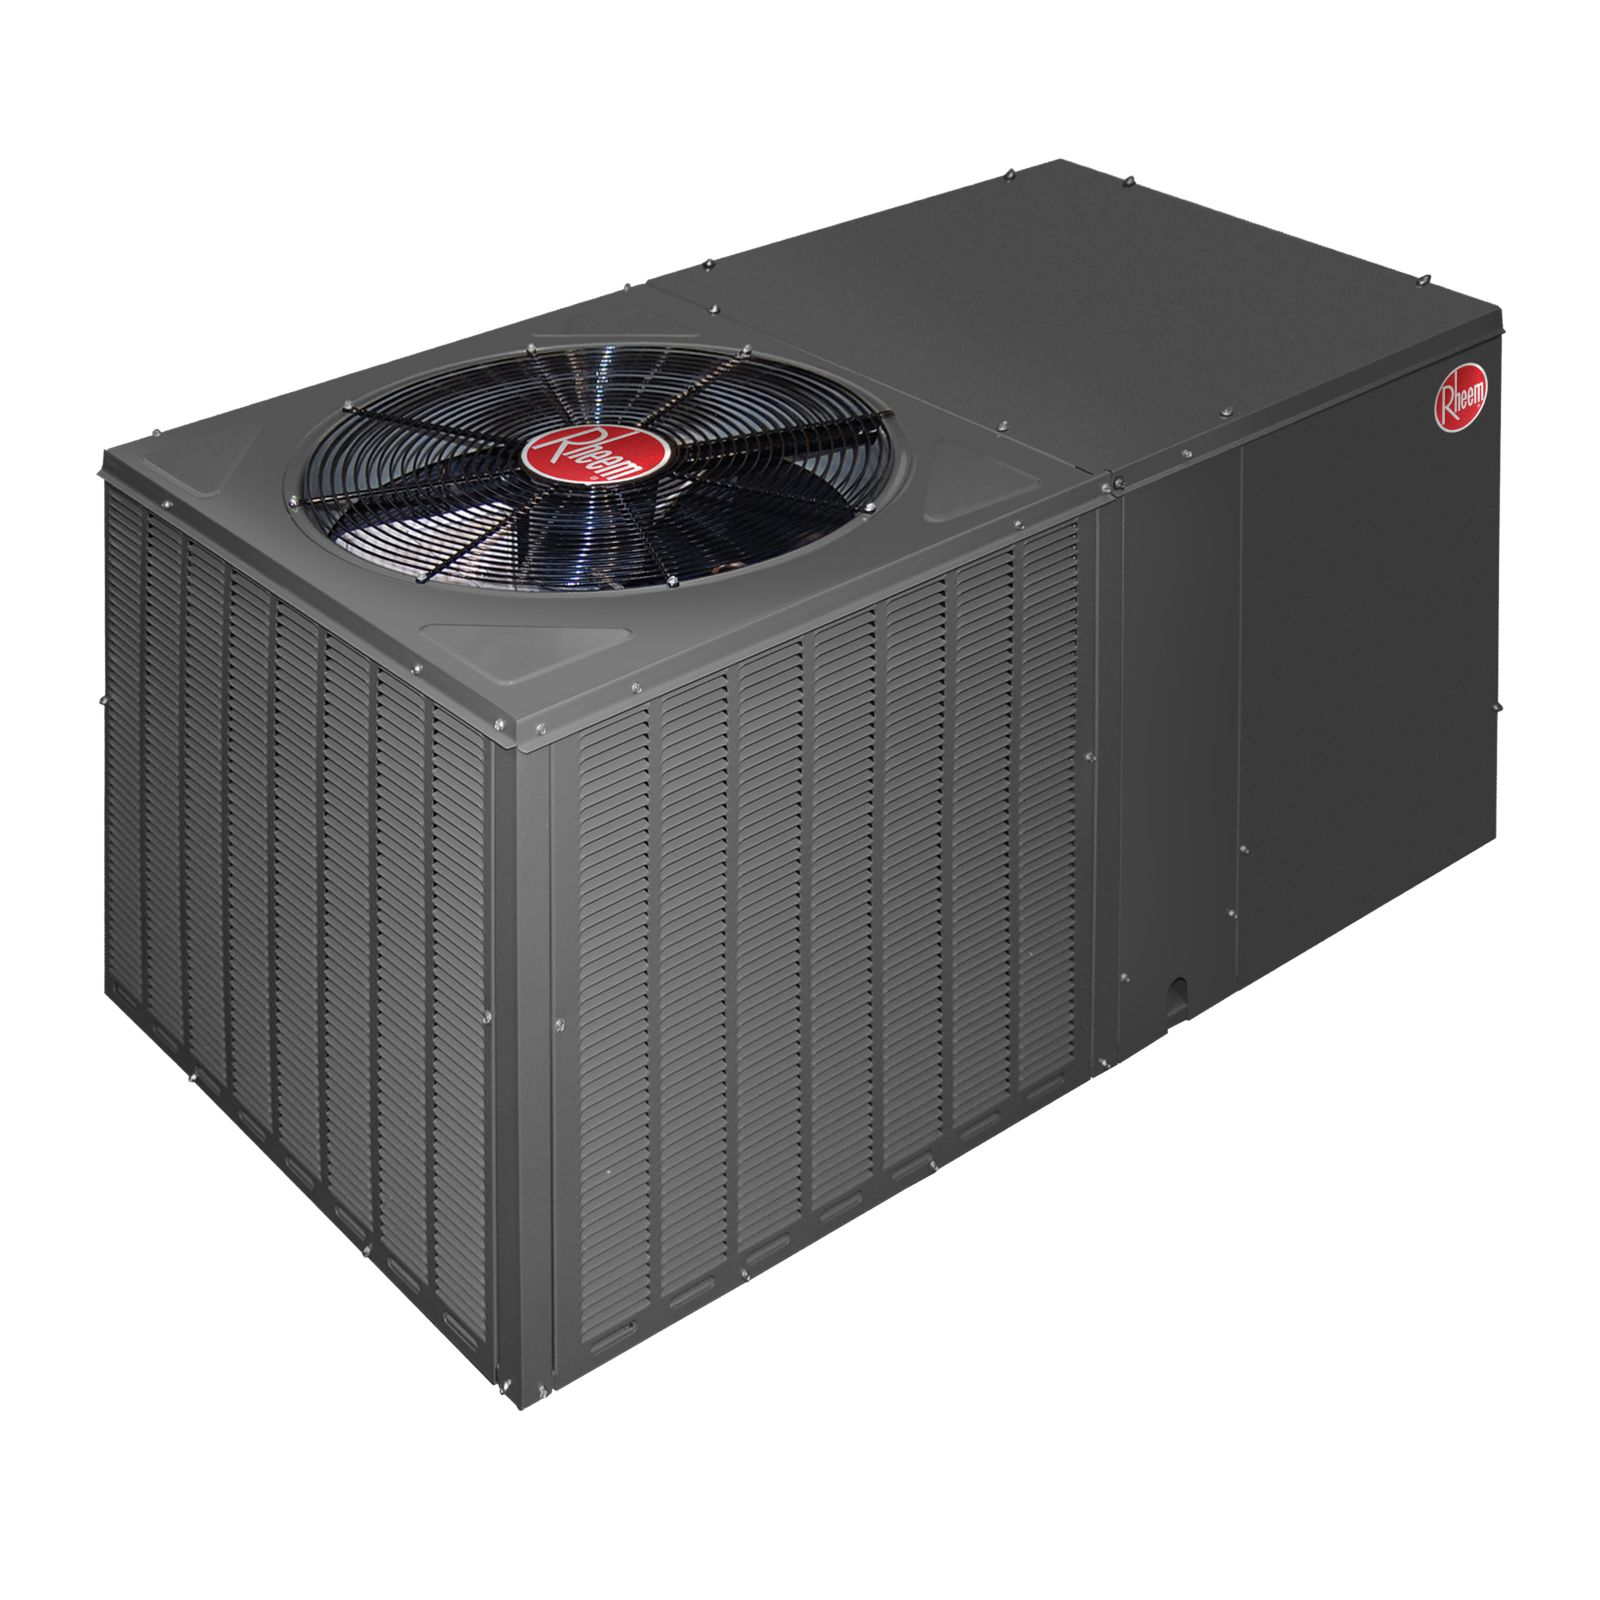 Rheem RQPM-A043JK000 - Classic 3 1/2 Ton, 14 SEER, Packaged Heat Pump With Horizontal Discharge, 208-230 V, 1 Ph, 60 Hz